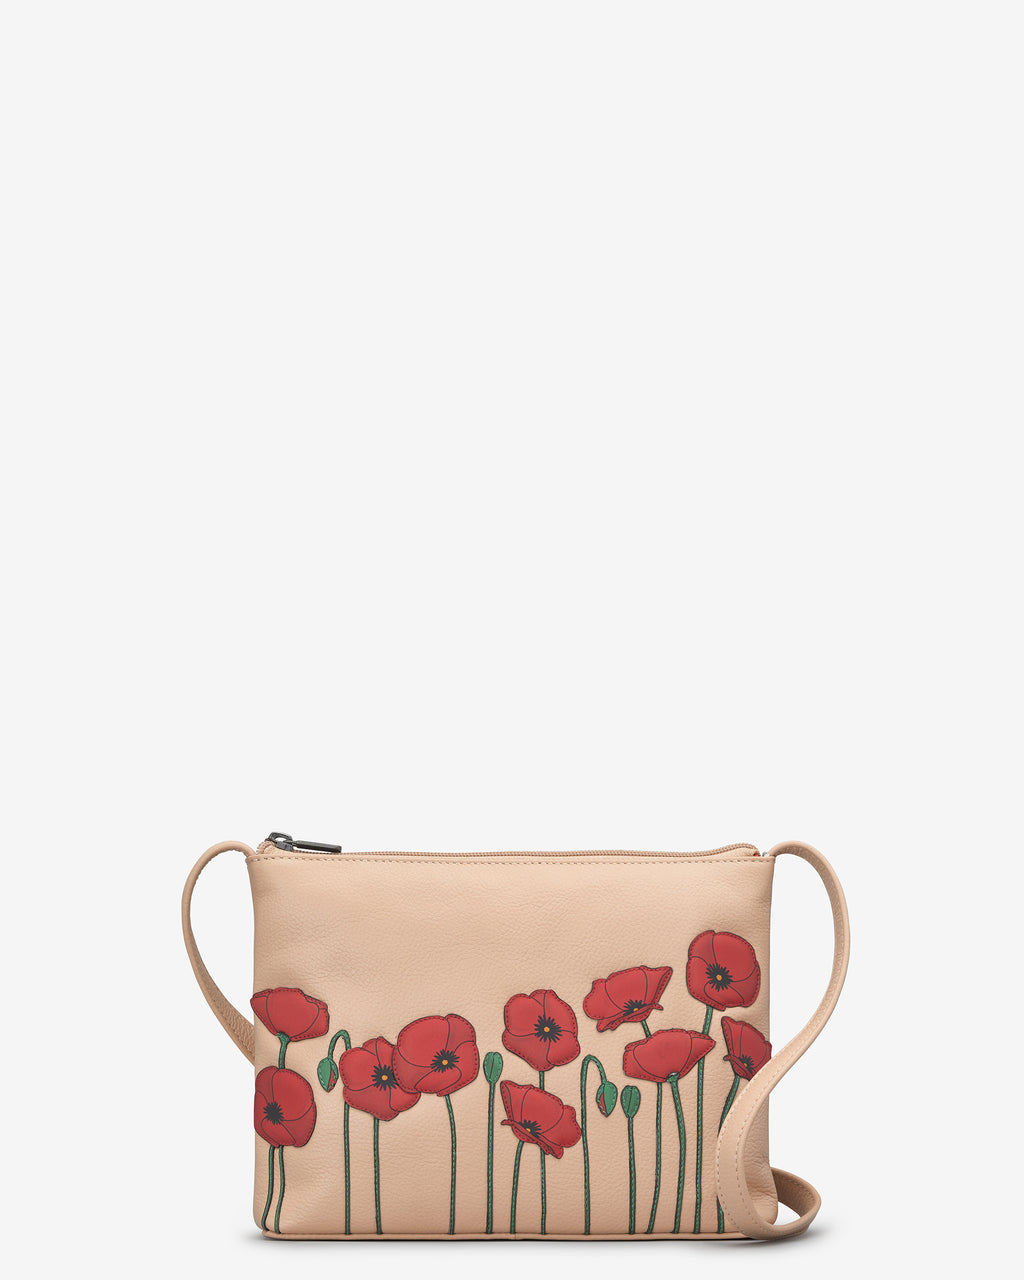 Poppy Parker Leather Cross Body Bag